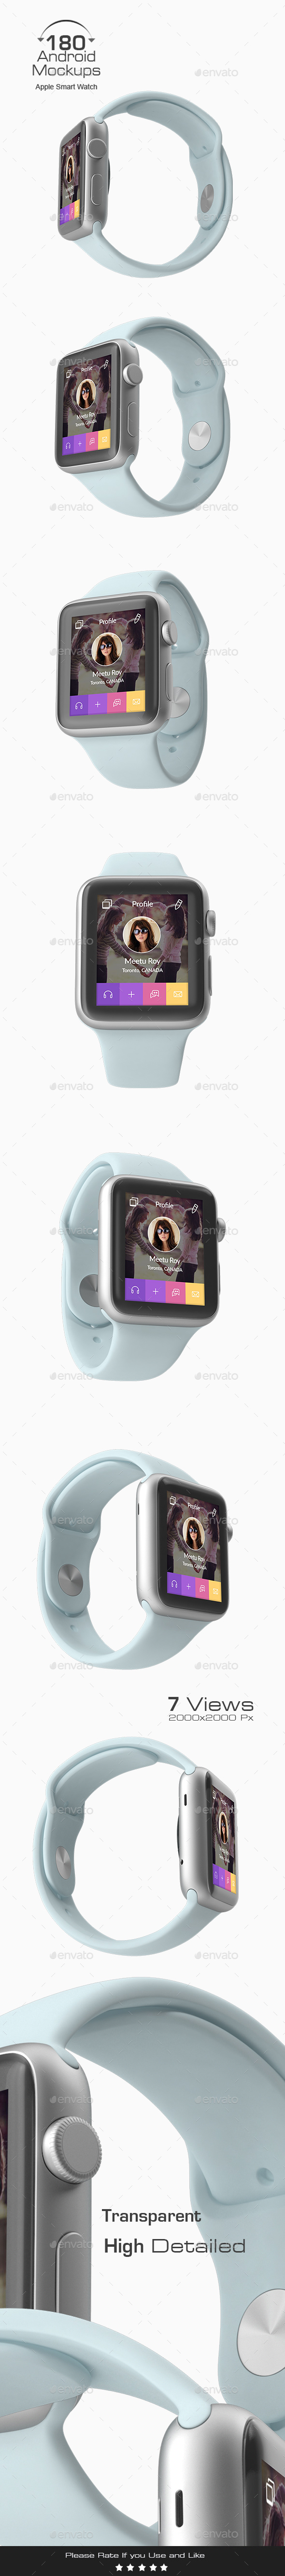 180 Responsive 3D Mockup - Apple Smart Watch - Miscellaneous Displays